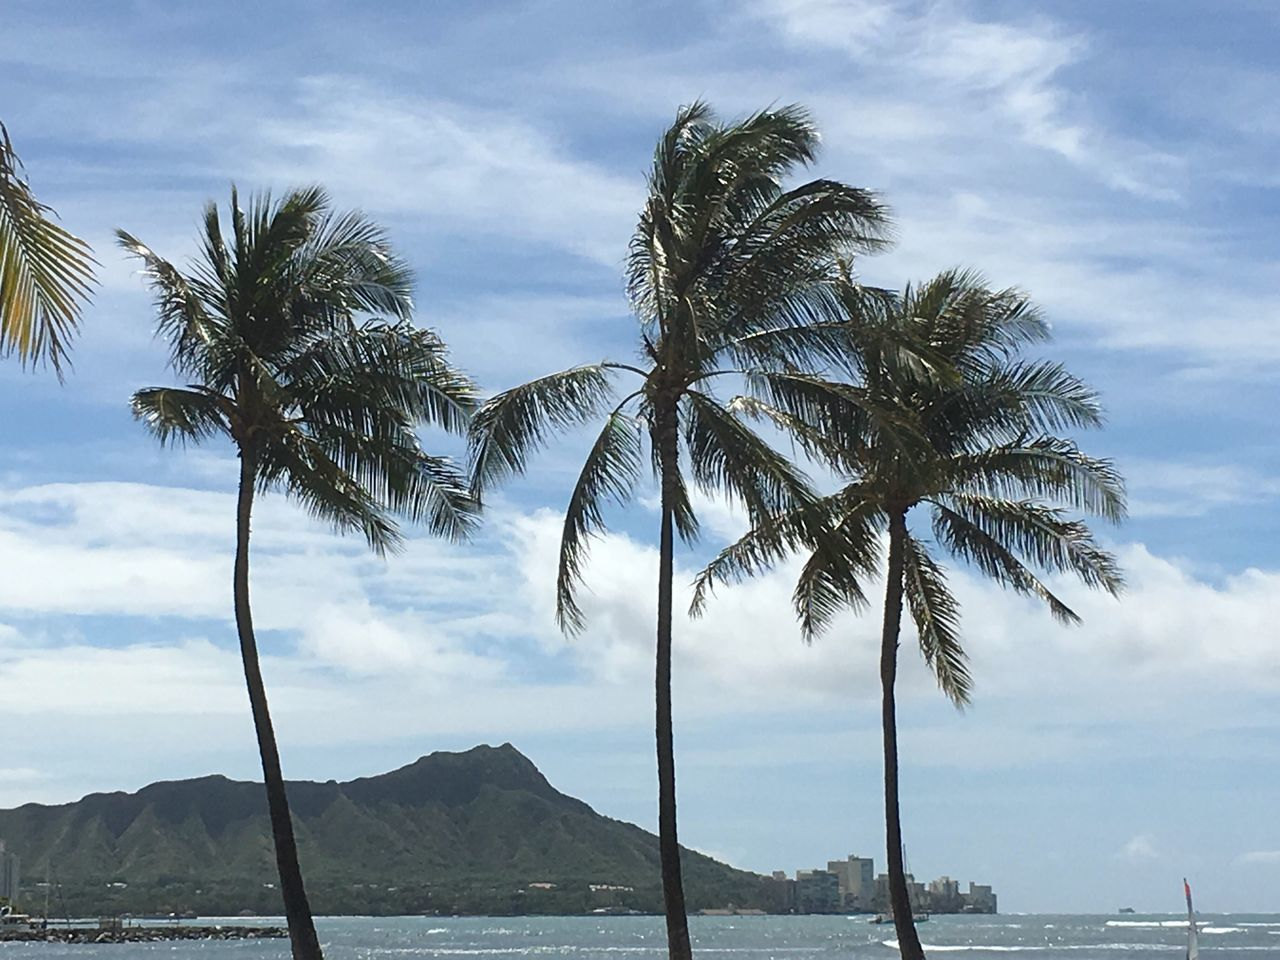 cloud - sky, scenics, sky, palm tree, sea, beauty in nature, water, nature, tree, day, tranquility, mountain, tranquil scene, outdoors, mountain range, no people, tree trunk, horizon over water, beach, growth